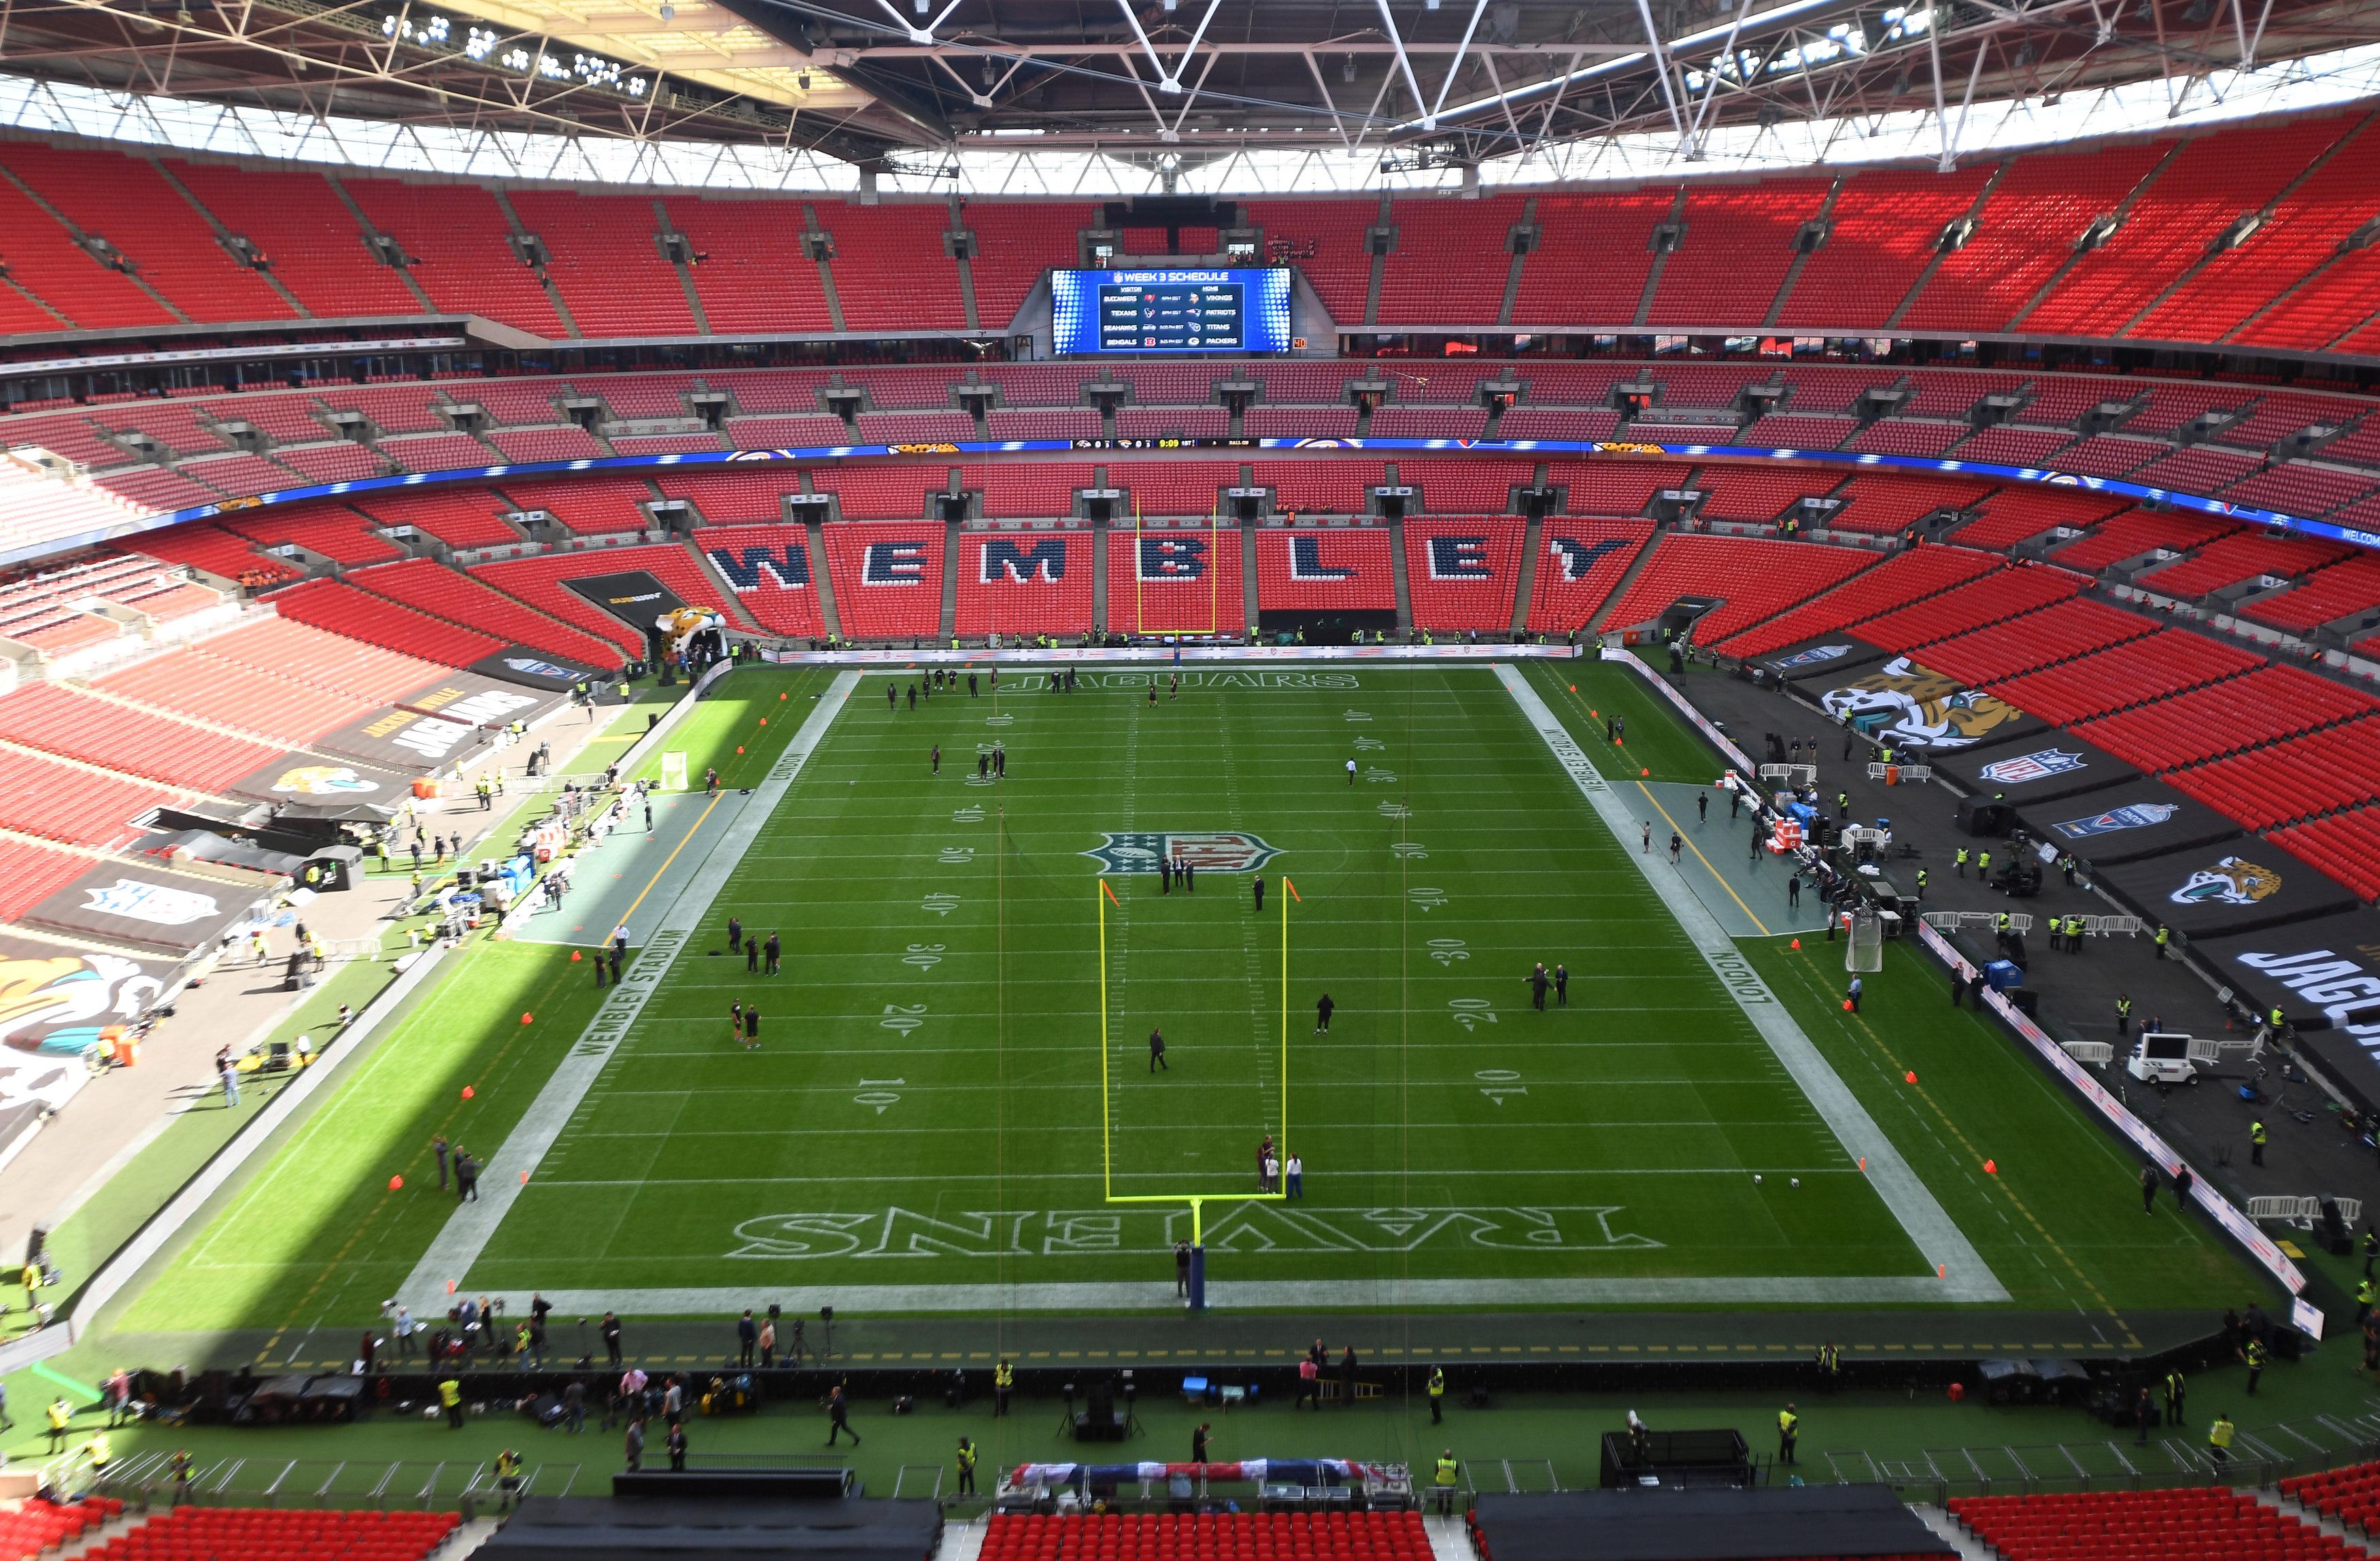 Fulham owner Shahid Khan is planning on moving his NFL franchise to Wembley